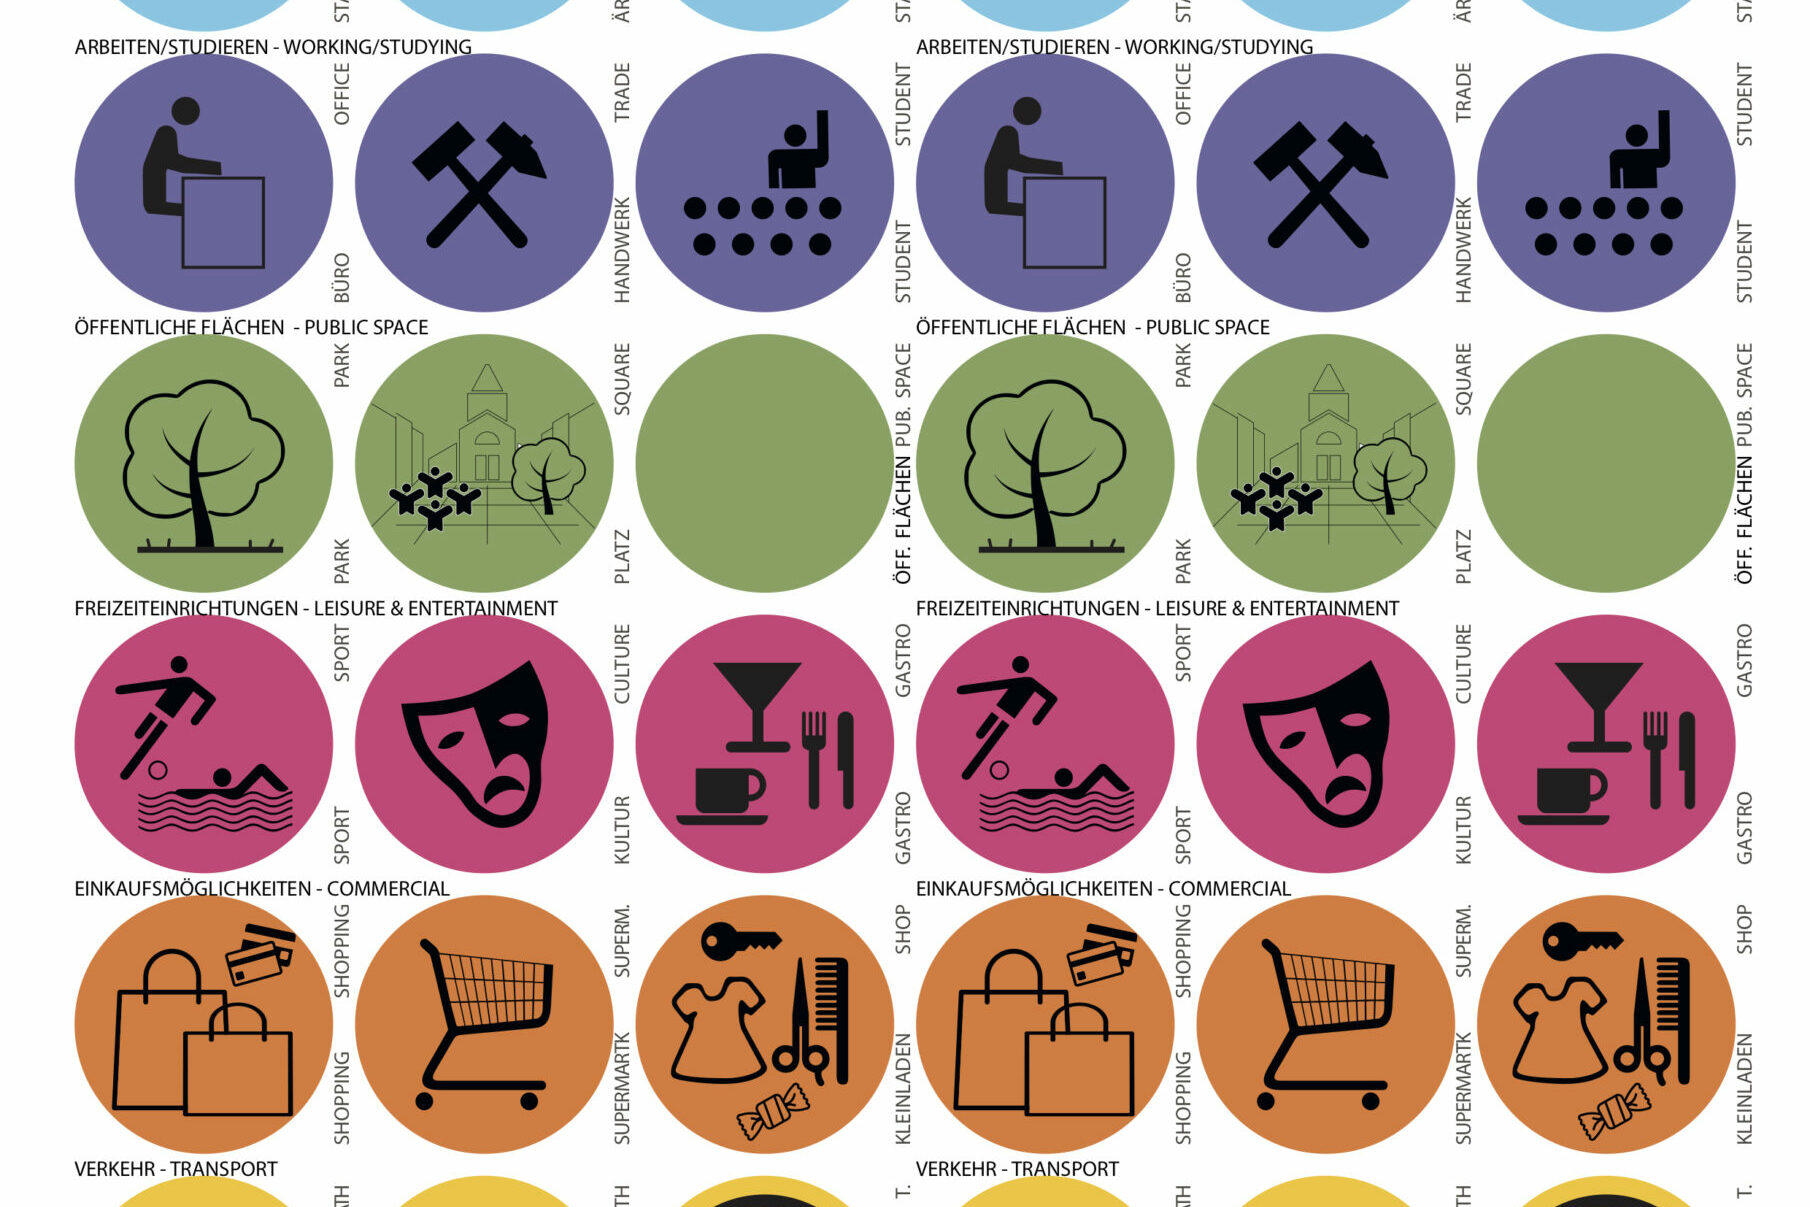 Remix(c)ity: A Participatory City-(re)making Game